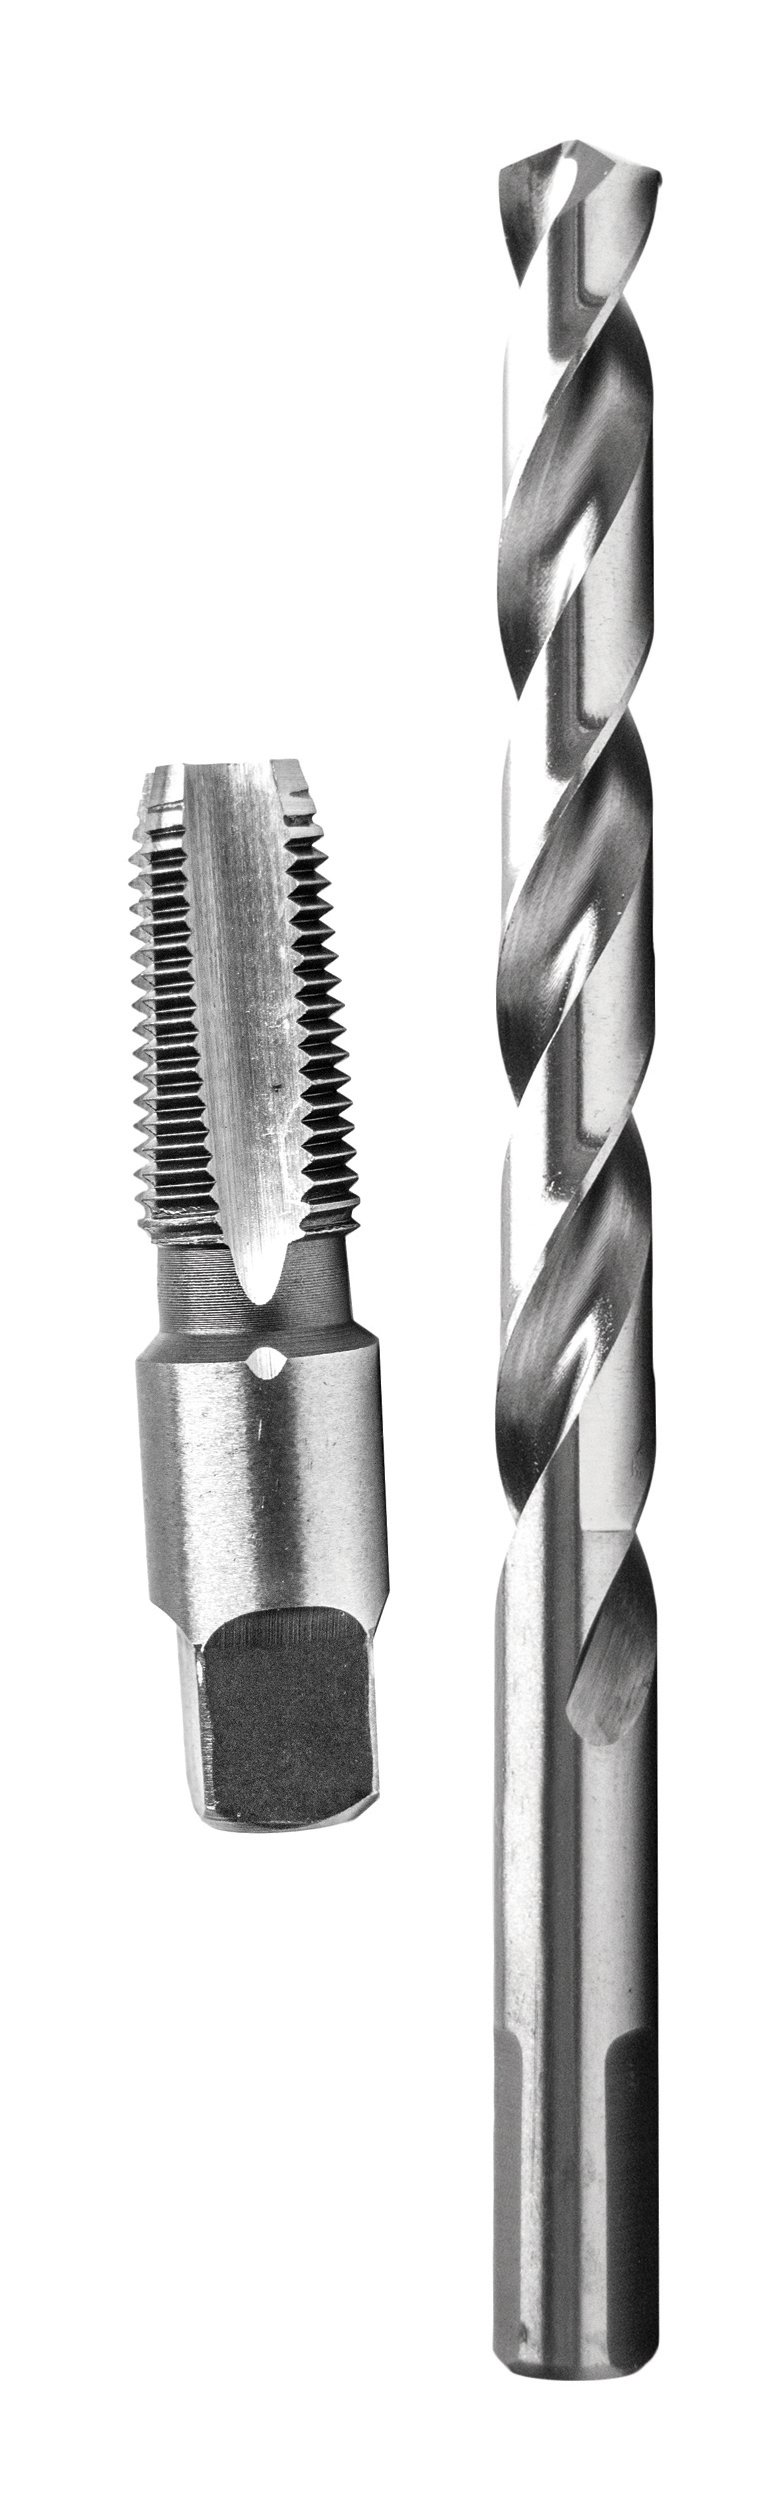 """Century Drill & Tool 93201 1/8-27 NPT Tap and 21/64"""" Drill Combo Pack"""